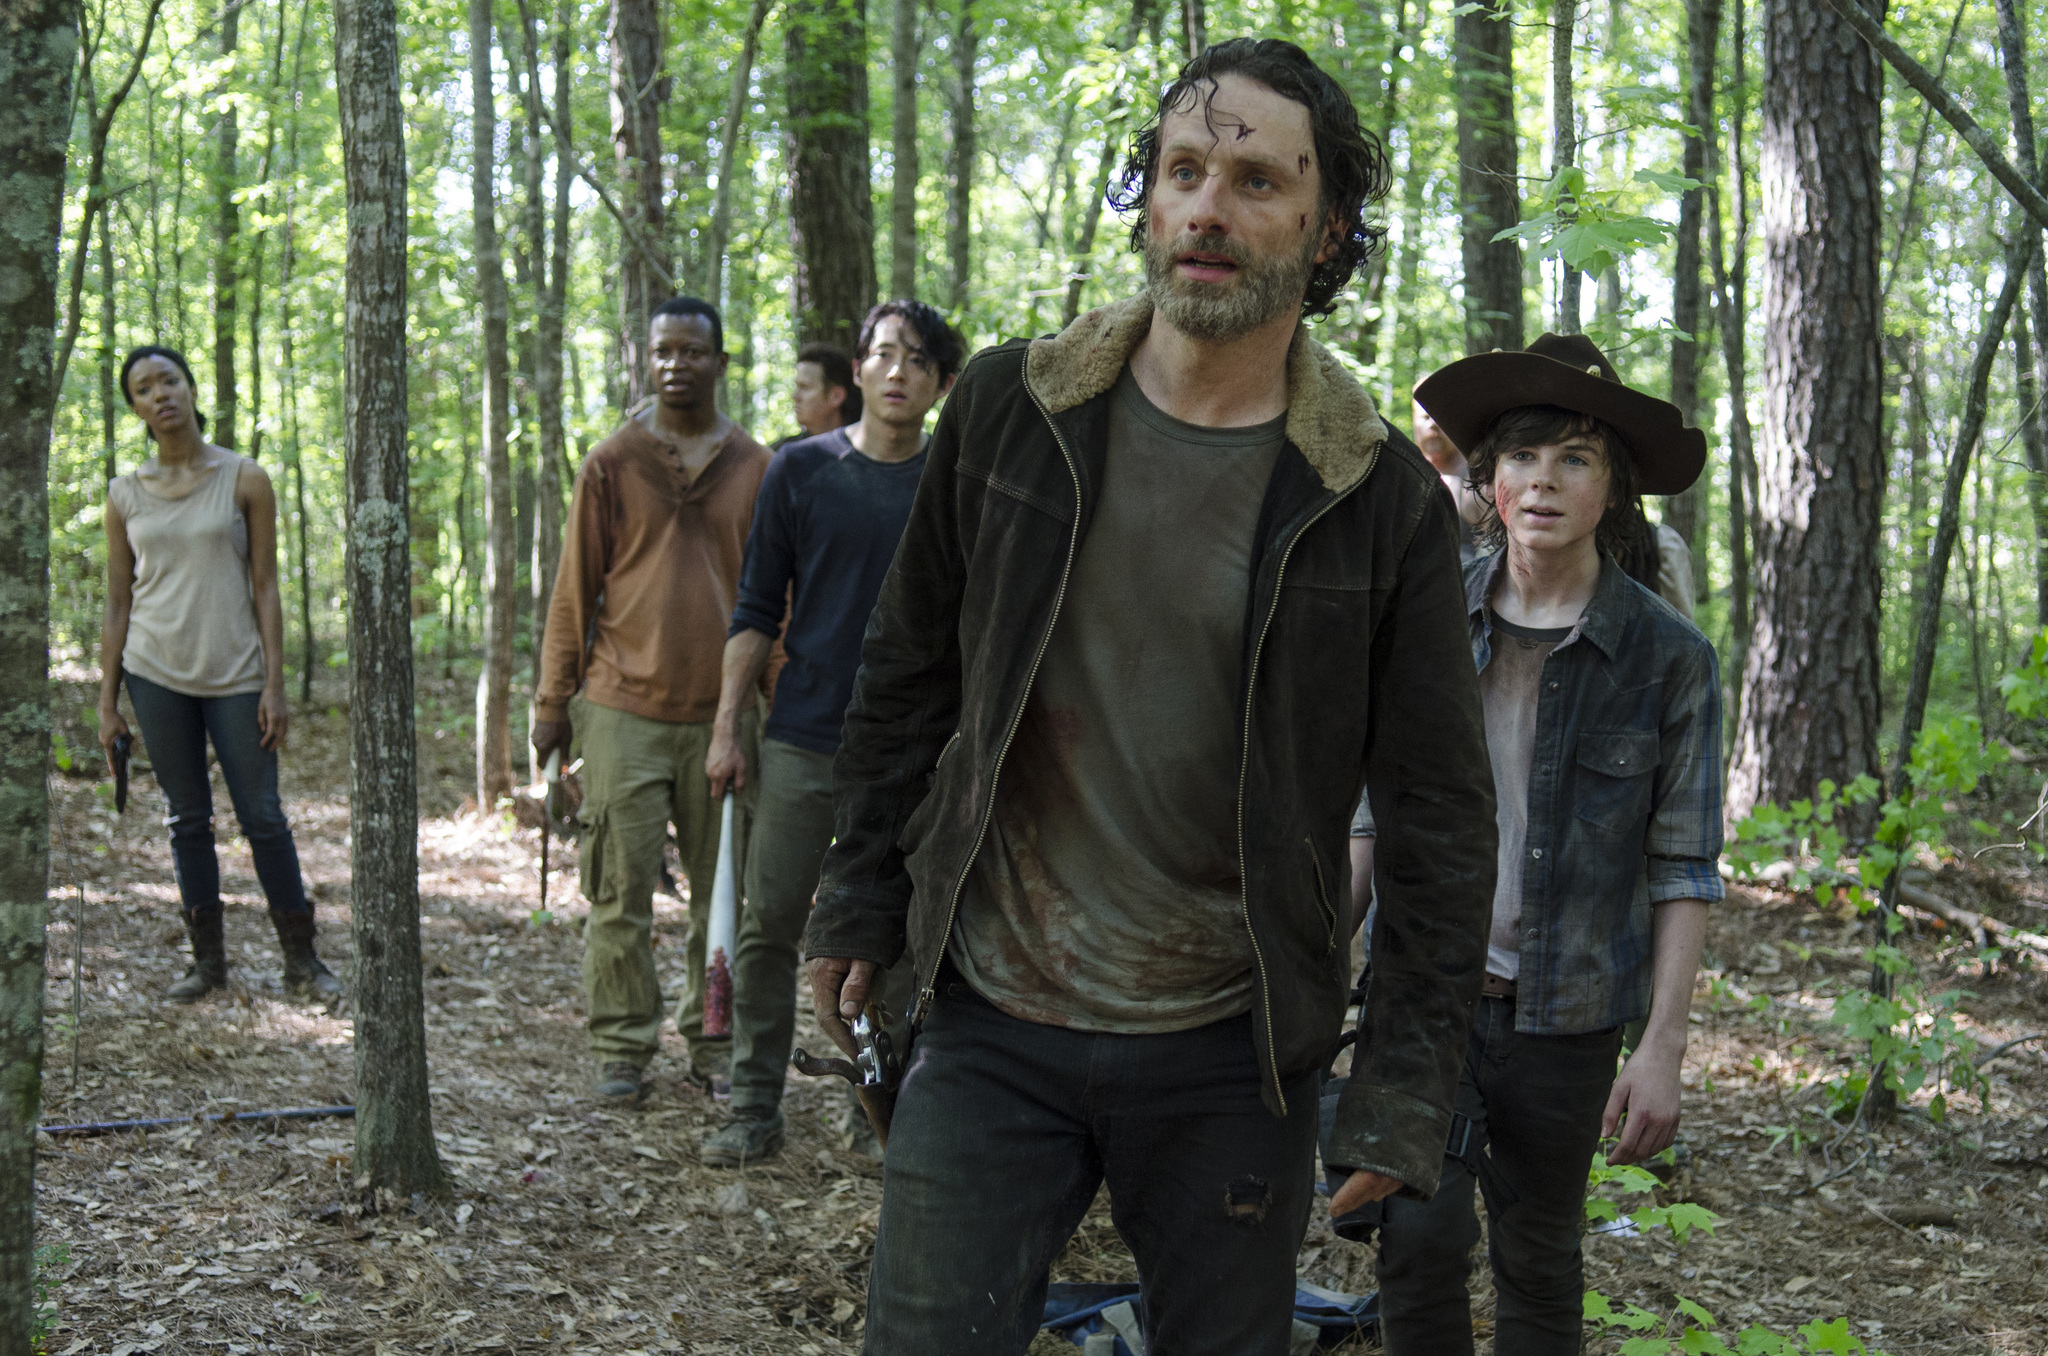 Sonequa Martin-Green as Sasha, Lawrence Gilliard Jr. as Bob Stookey, Josh McDermitt as Dr. Eugene Porter, Steven Yeun as Glenn Rhee, Andrew Lincoln as Rick Grimes and Chandler Riggs as Carl Grimes - The Walking Dead _ Season 5, Episode 1 - Photo Credit: Gene Page/AMC